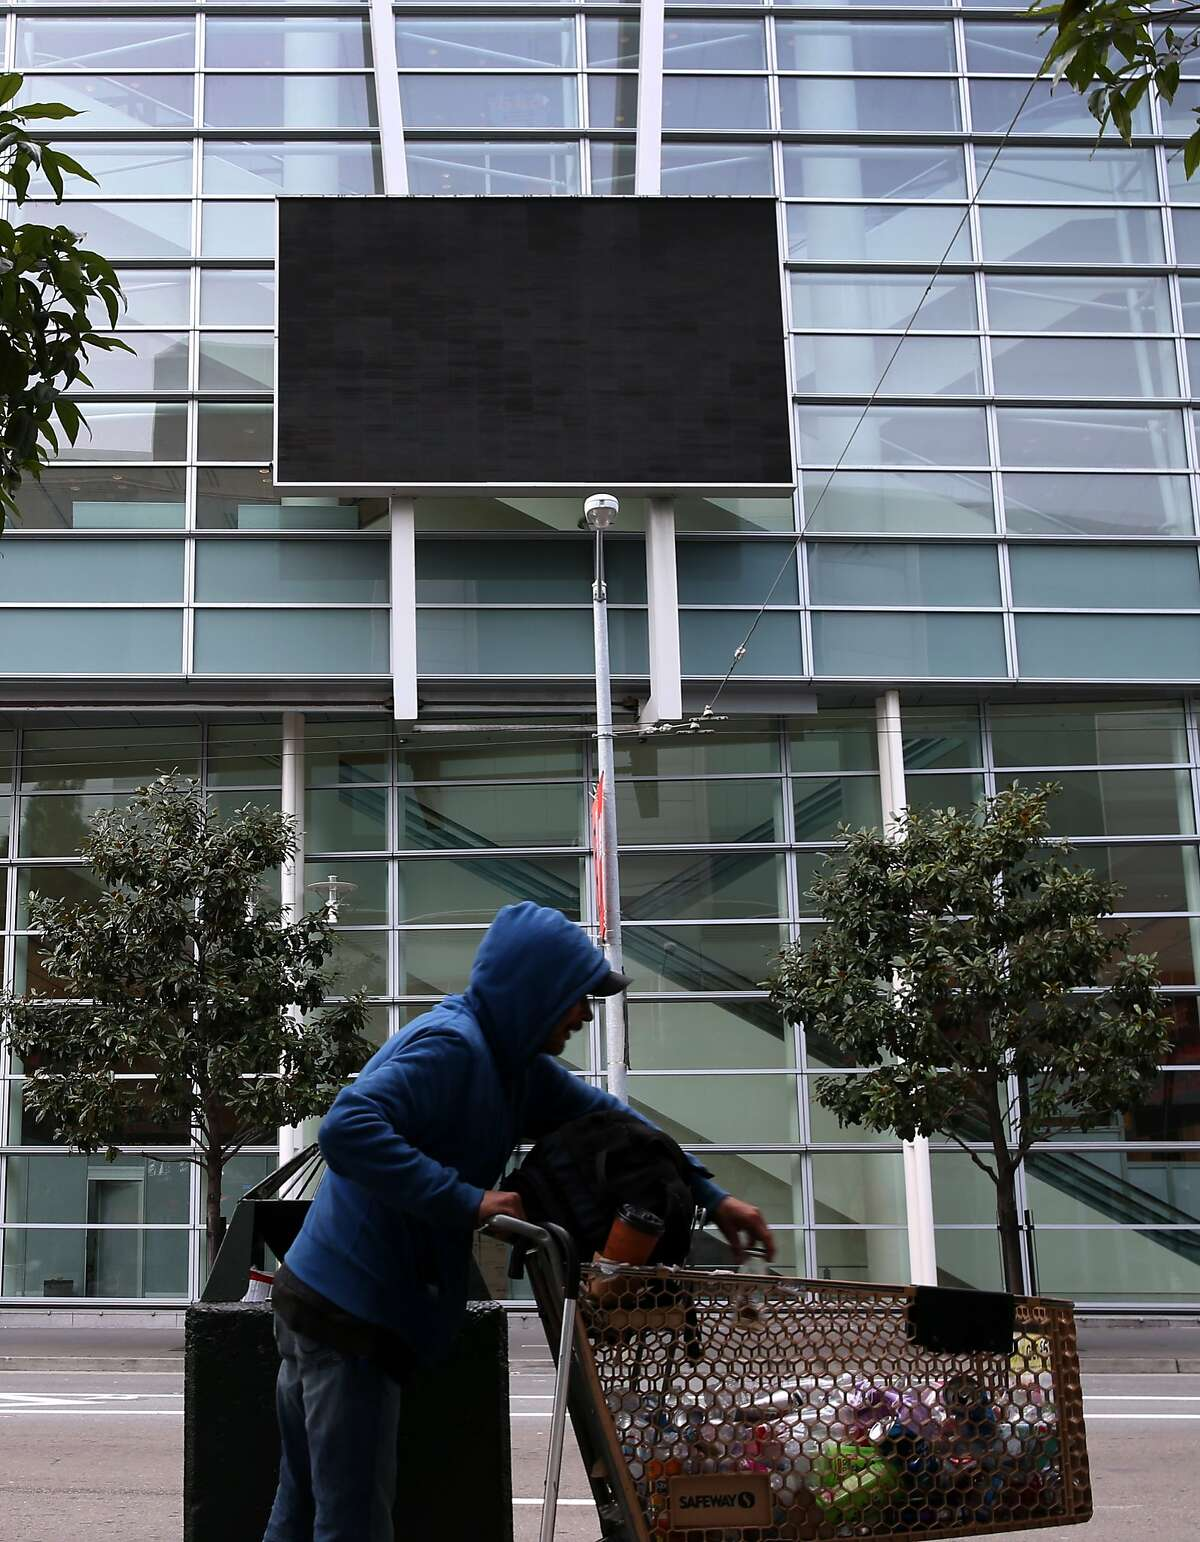 A man collects recyclables in front of a dark video screen installed on the side of Moscone West on Fourth Street in San Francisco, Calif. on Tuesday, Jan. 20, 2015. The screen has never really functioned since its installation in 2003.